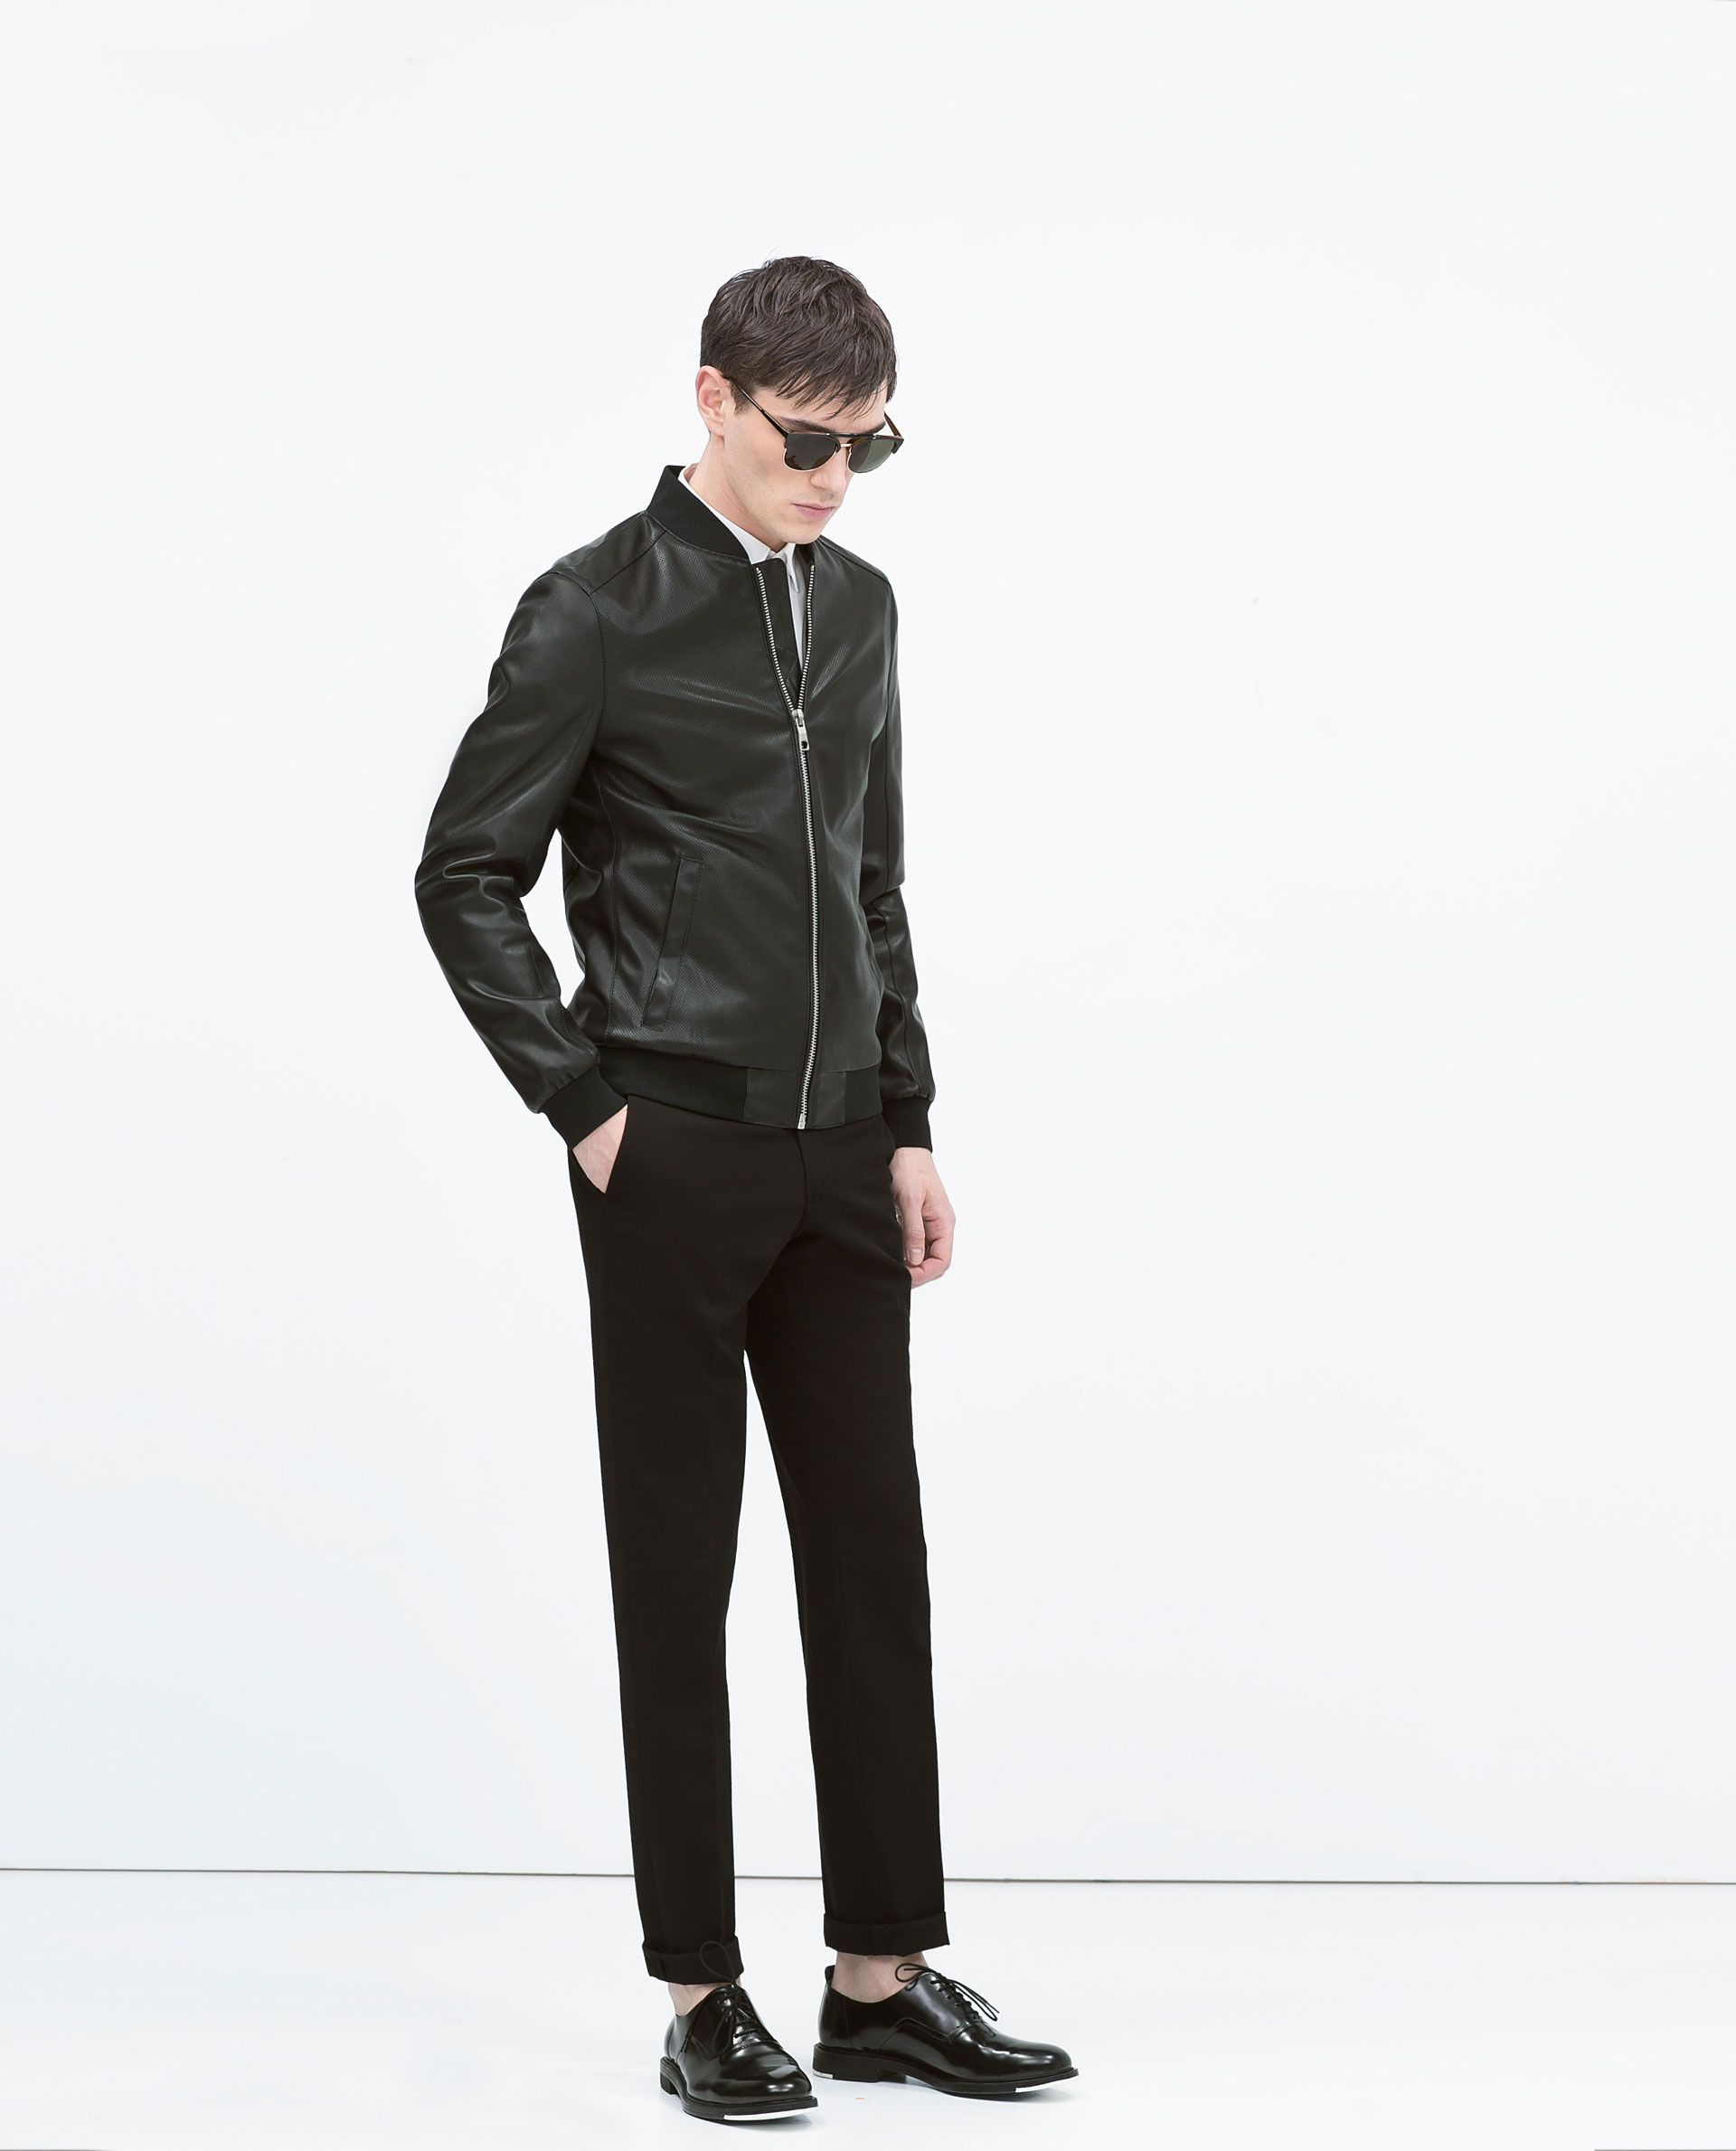 on feet at good looking buying now BLOUSON COLLÈGE PERFORÉ - Blousons - HOMME | ZARA France ...